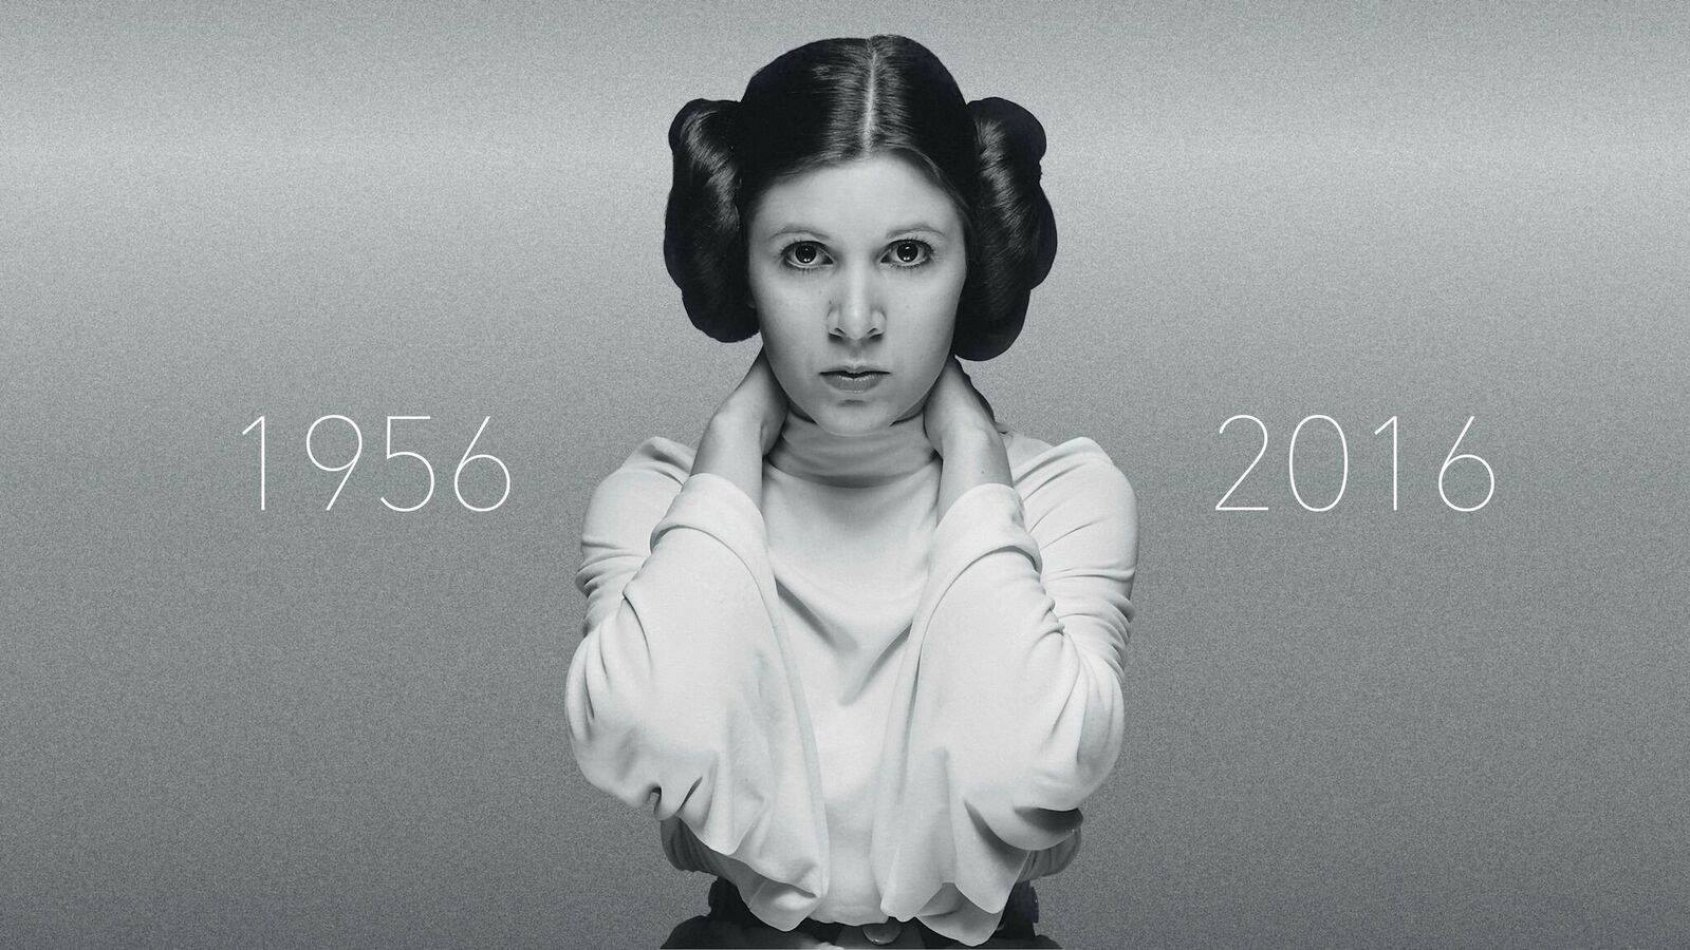 Carrie Fisher, la Princesse Leia nous a quittés et a rejoint la Force.